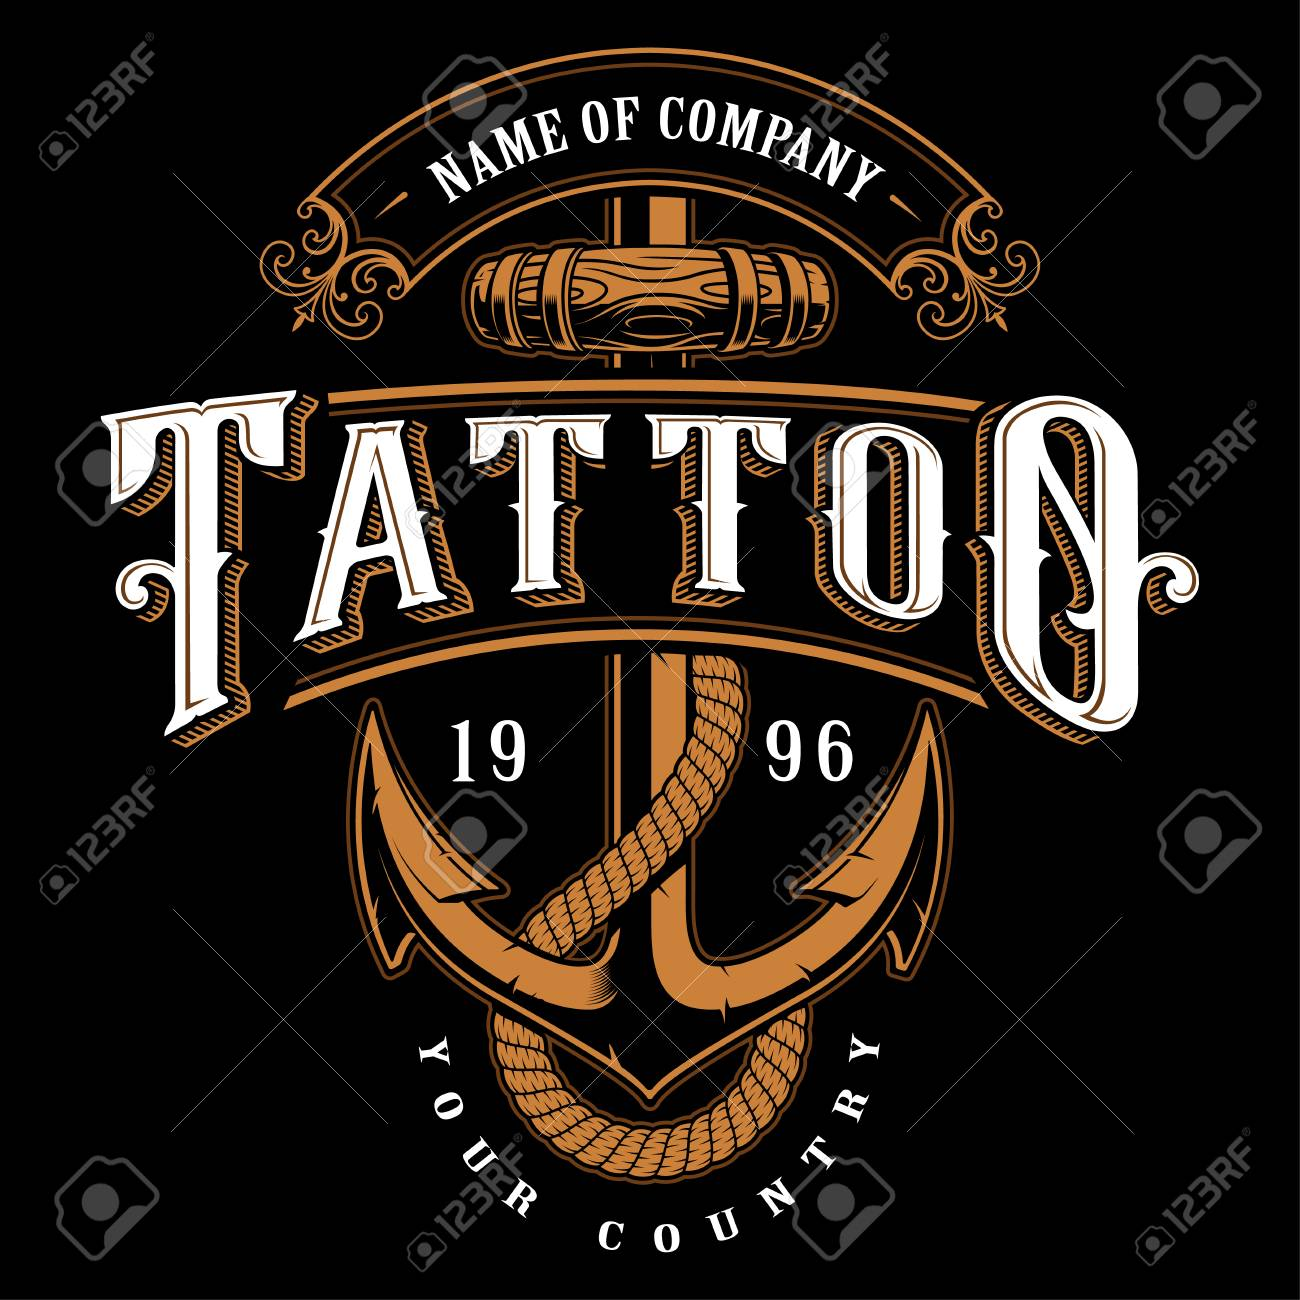 Tattoo Lettering Illustration With Anchor Logo Template Design Shirt Graphic On Black Background